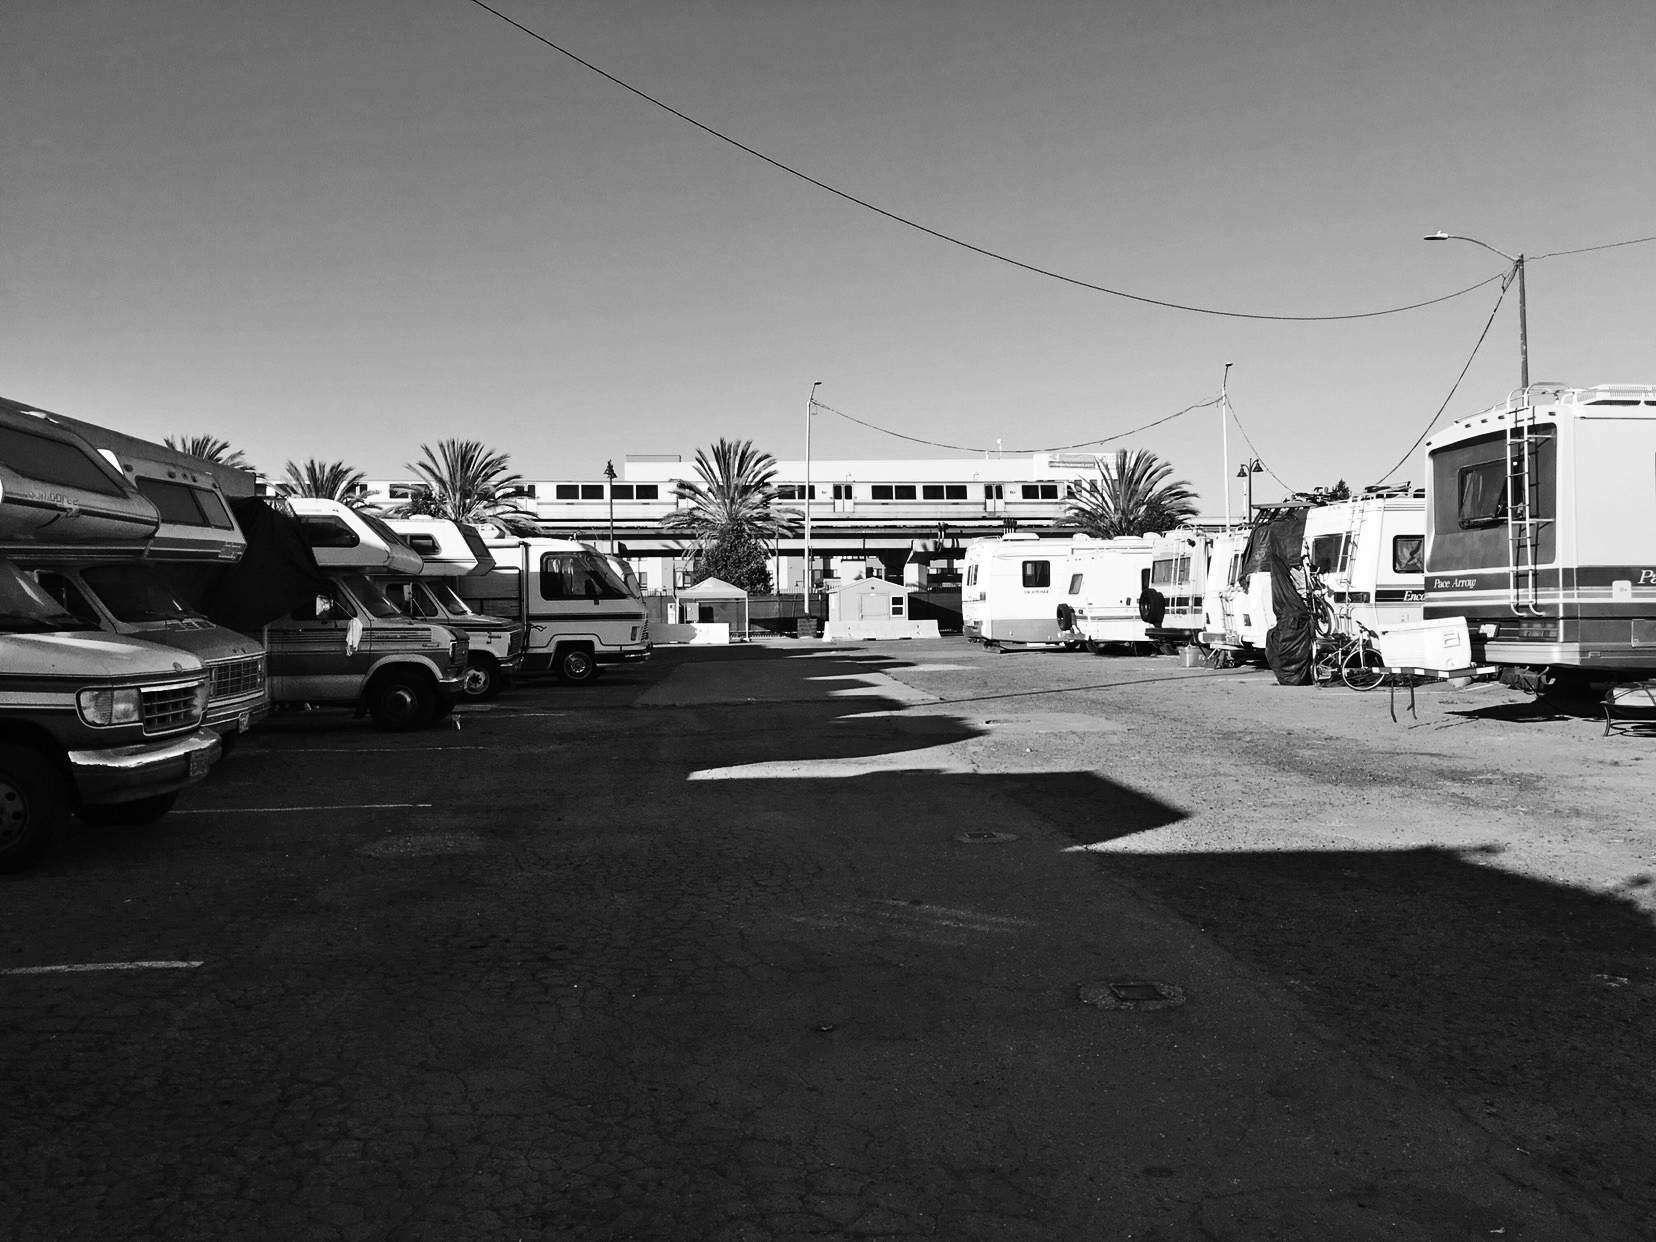 Black and white phono of an RV park cast in midday shadow